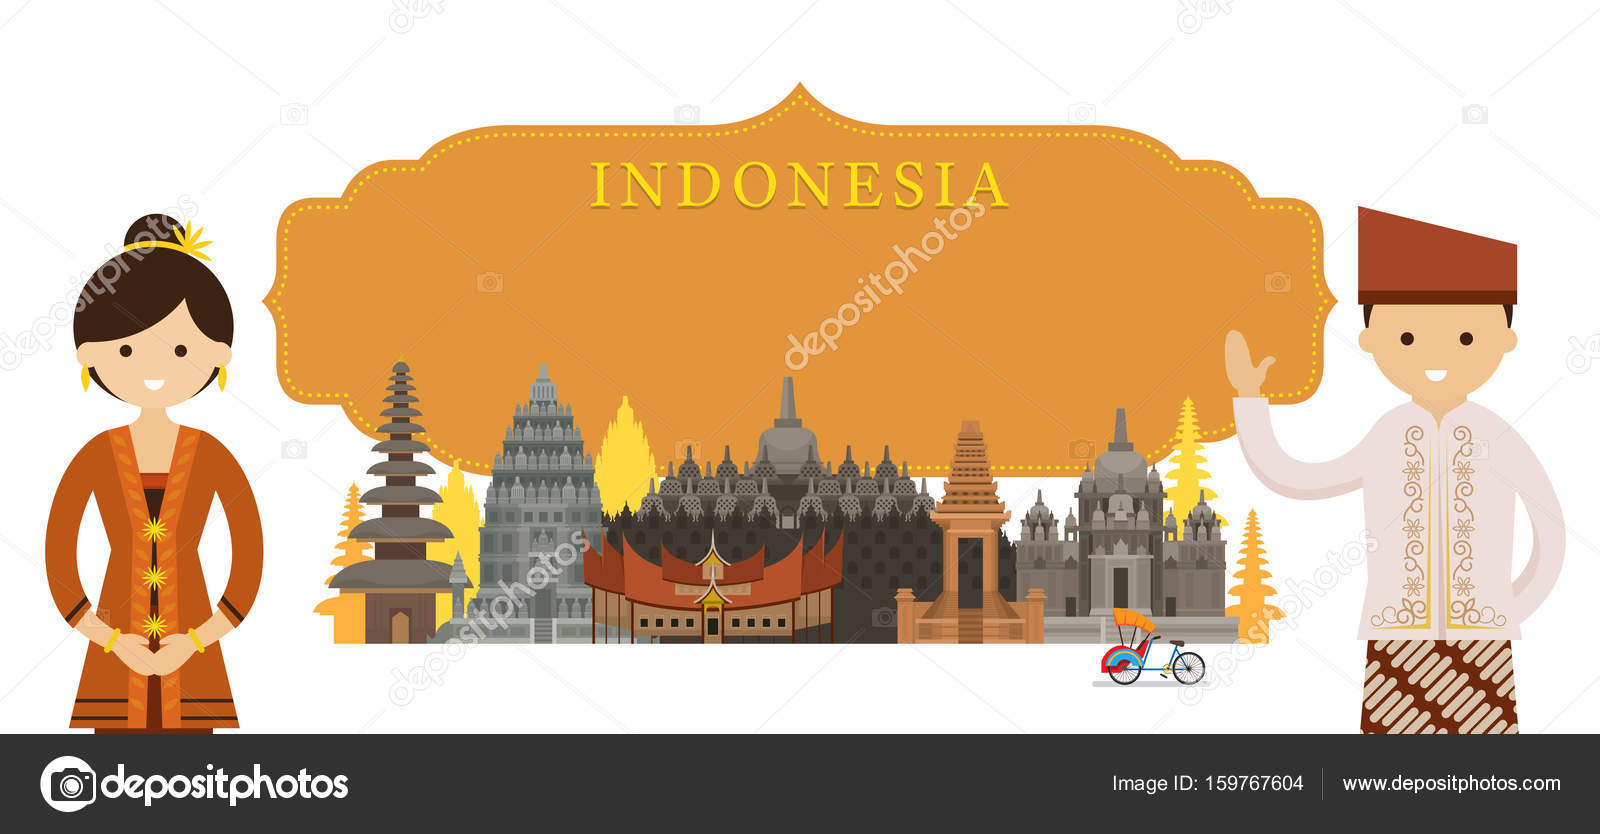 Culture Travel and Tourist Attraction u2014 Vector